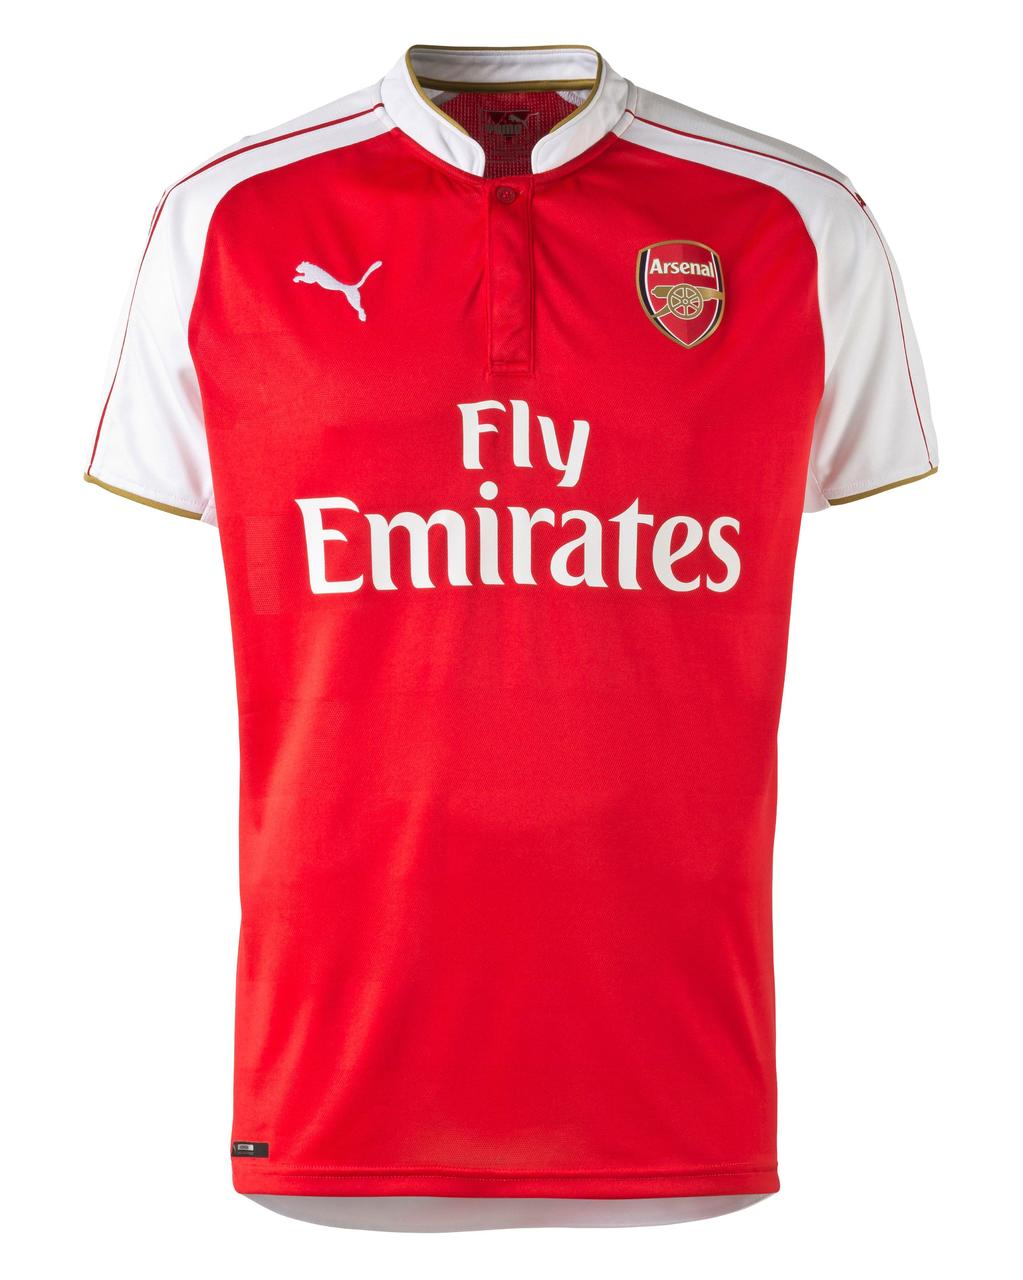 11a16aab716 Arsenal Home Shirt 2014 15 Sports Direct – EDGE Engineering and ...